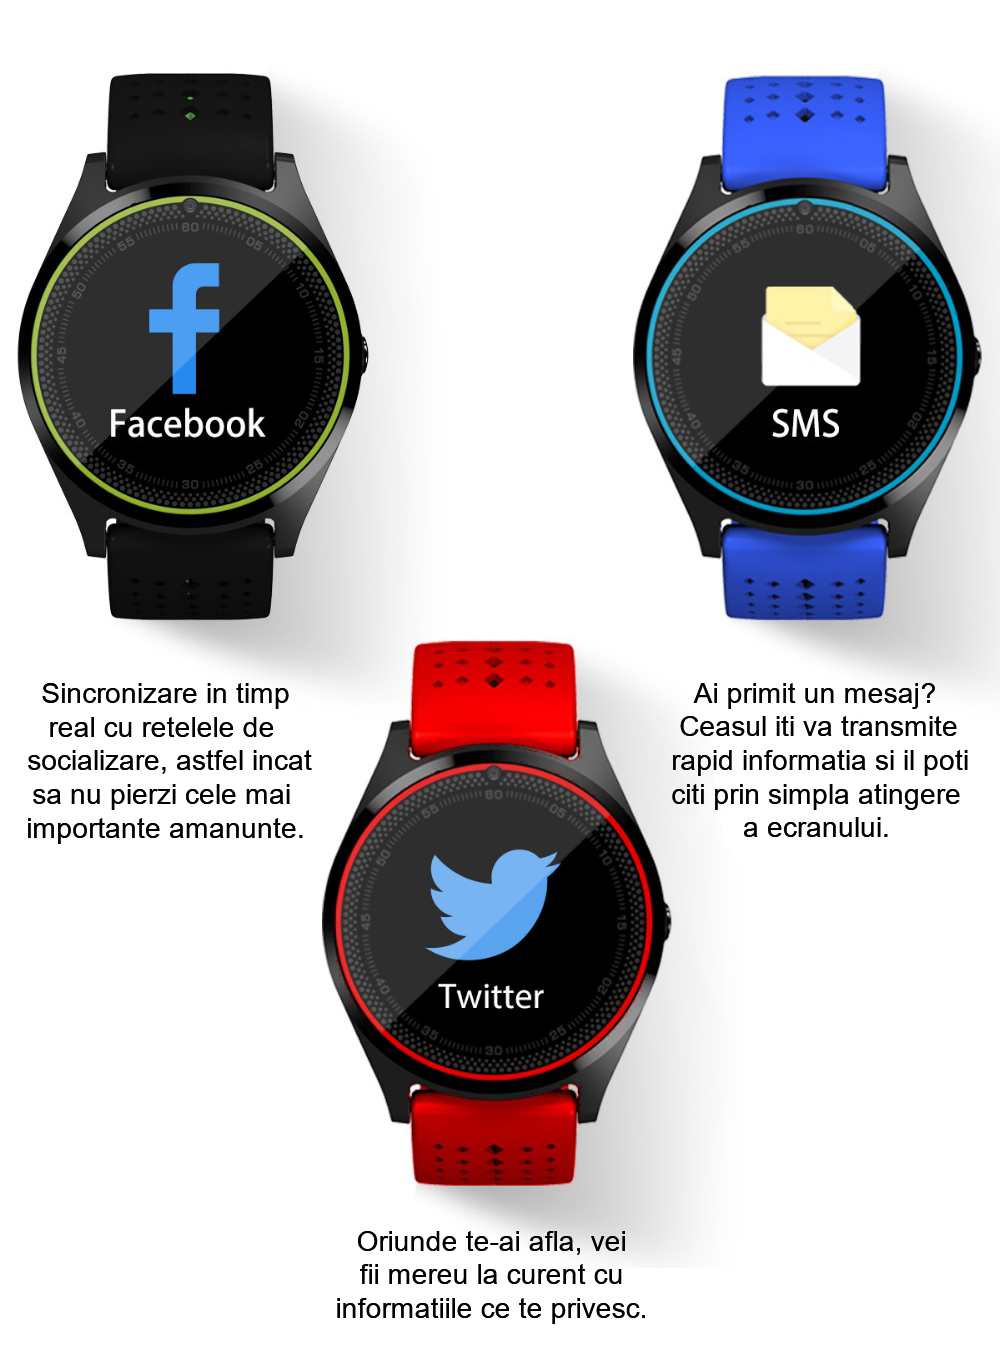 Ceas Smartwatch cu Telefon iUni V9 Plus, Touchscreen, Camera 2MP